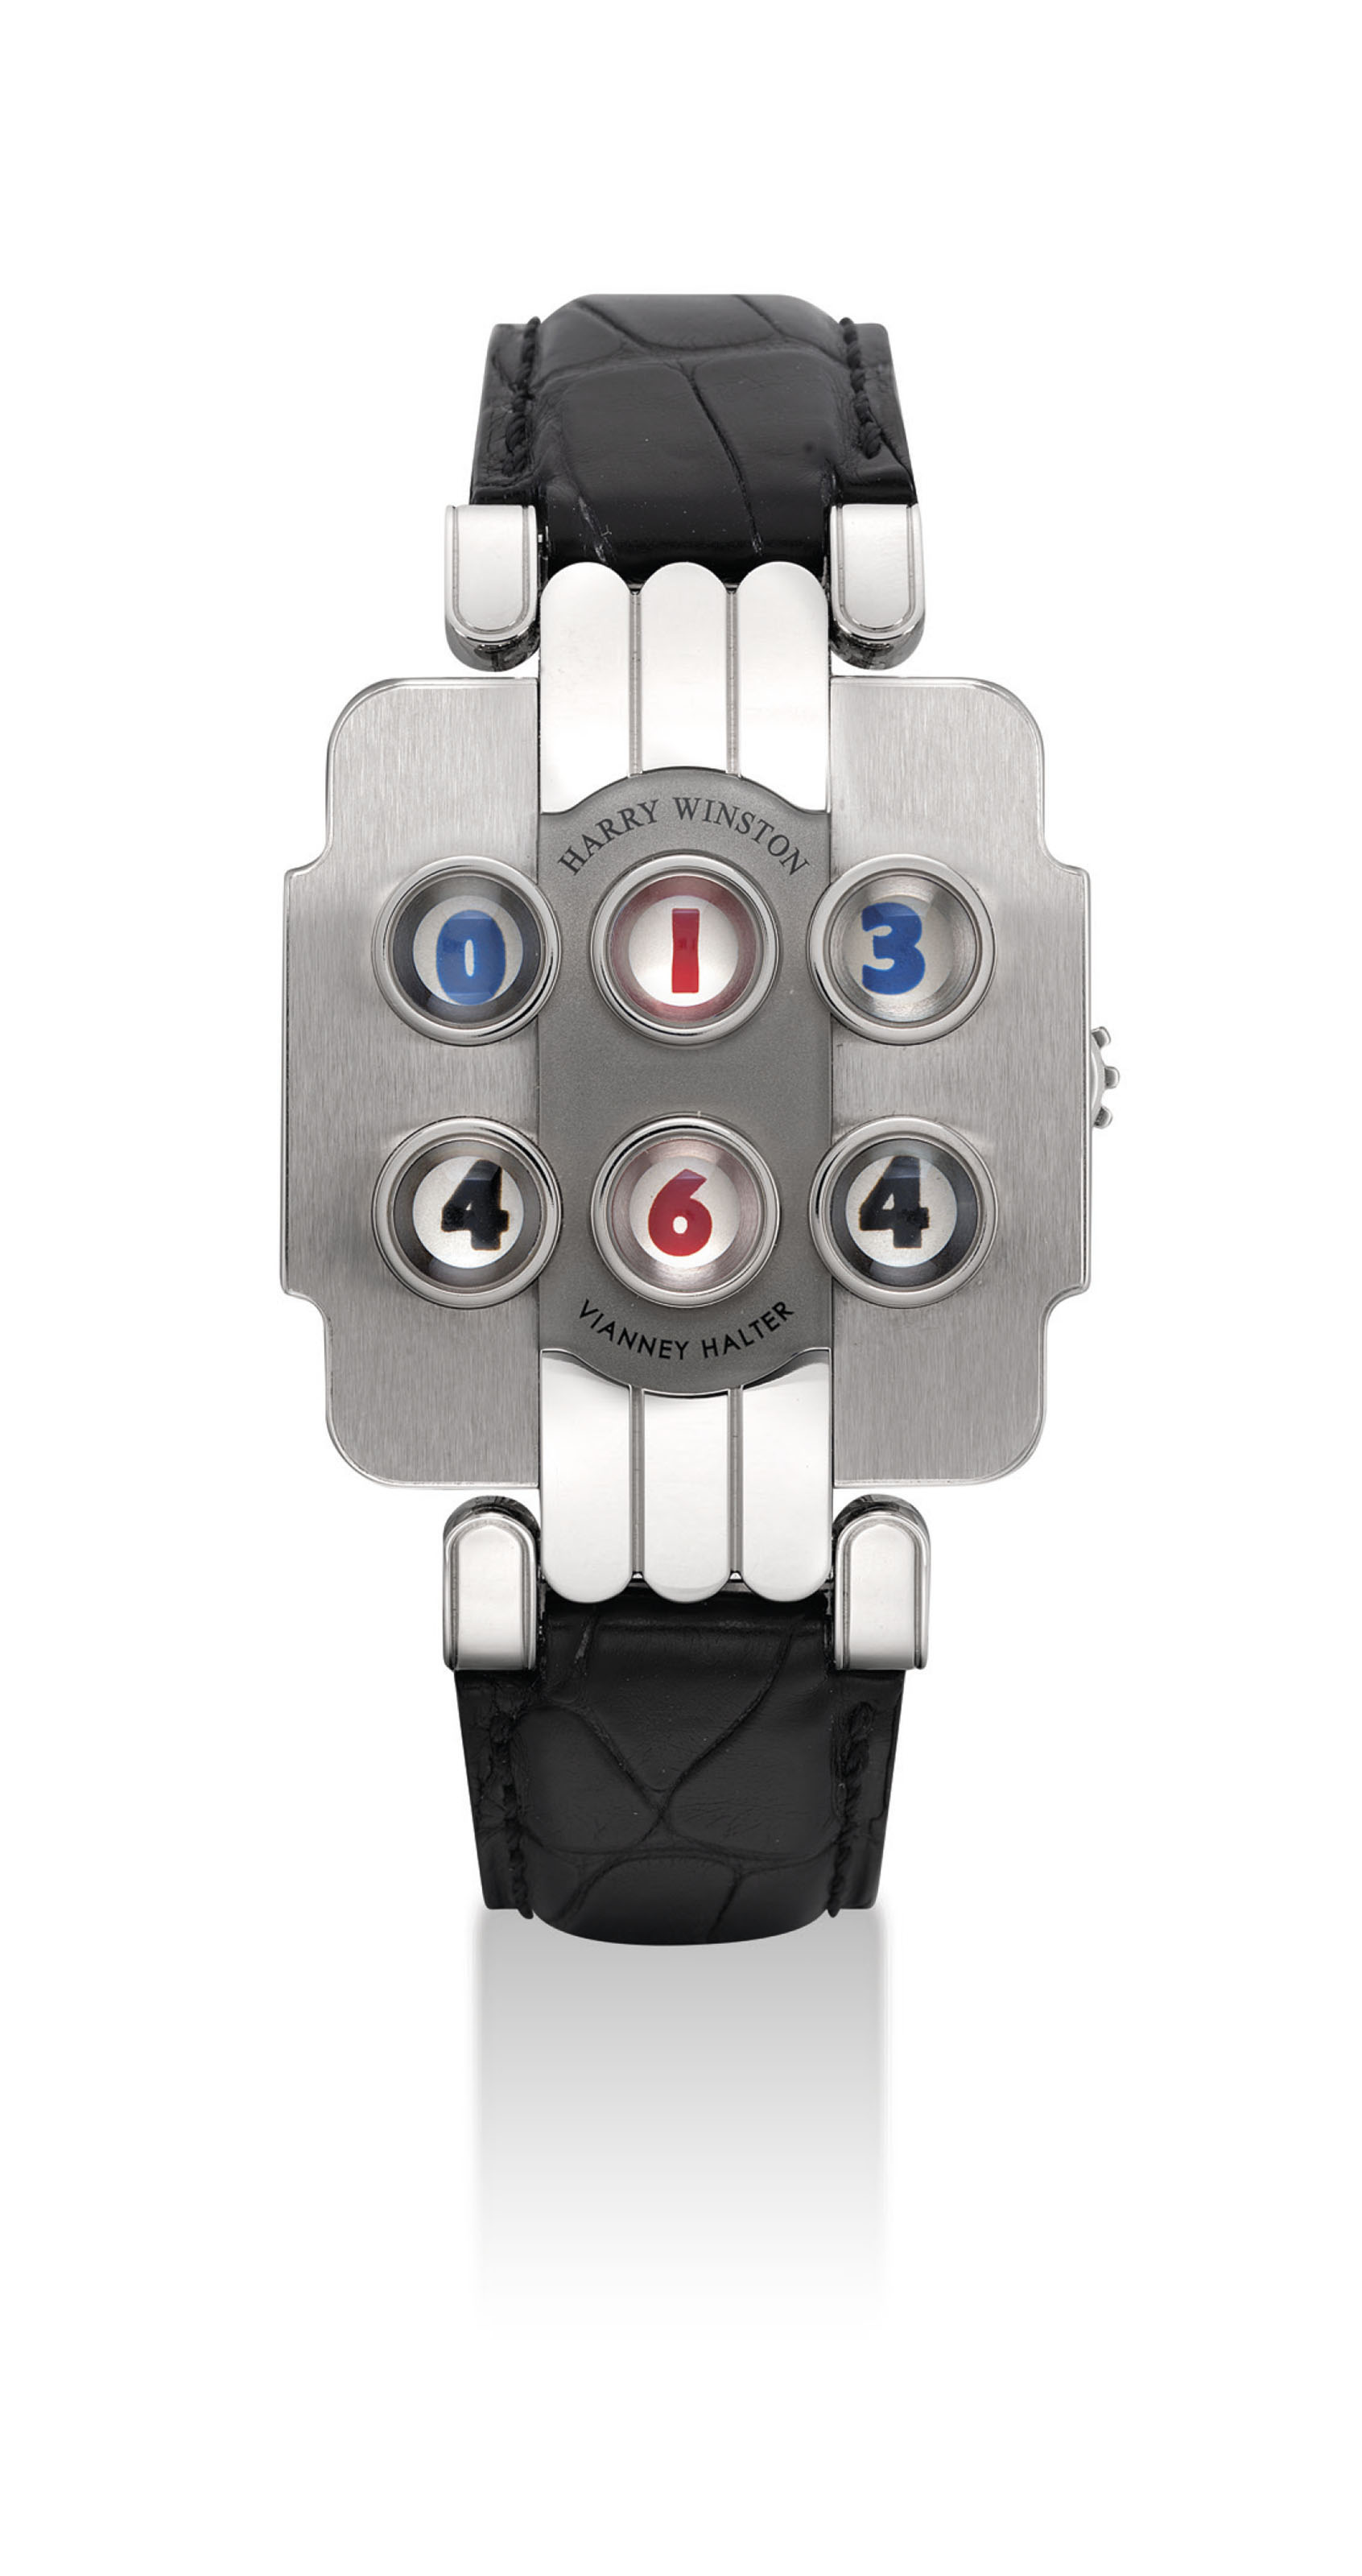 HARRY WINSTON & VIANNEY HALTER. AN UNUSUAL AND RARE PLATINUM LIMITED EDITION WRISTWATCH WITH DIGITAL TIME DISPLAY, HOURS AND DATE